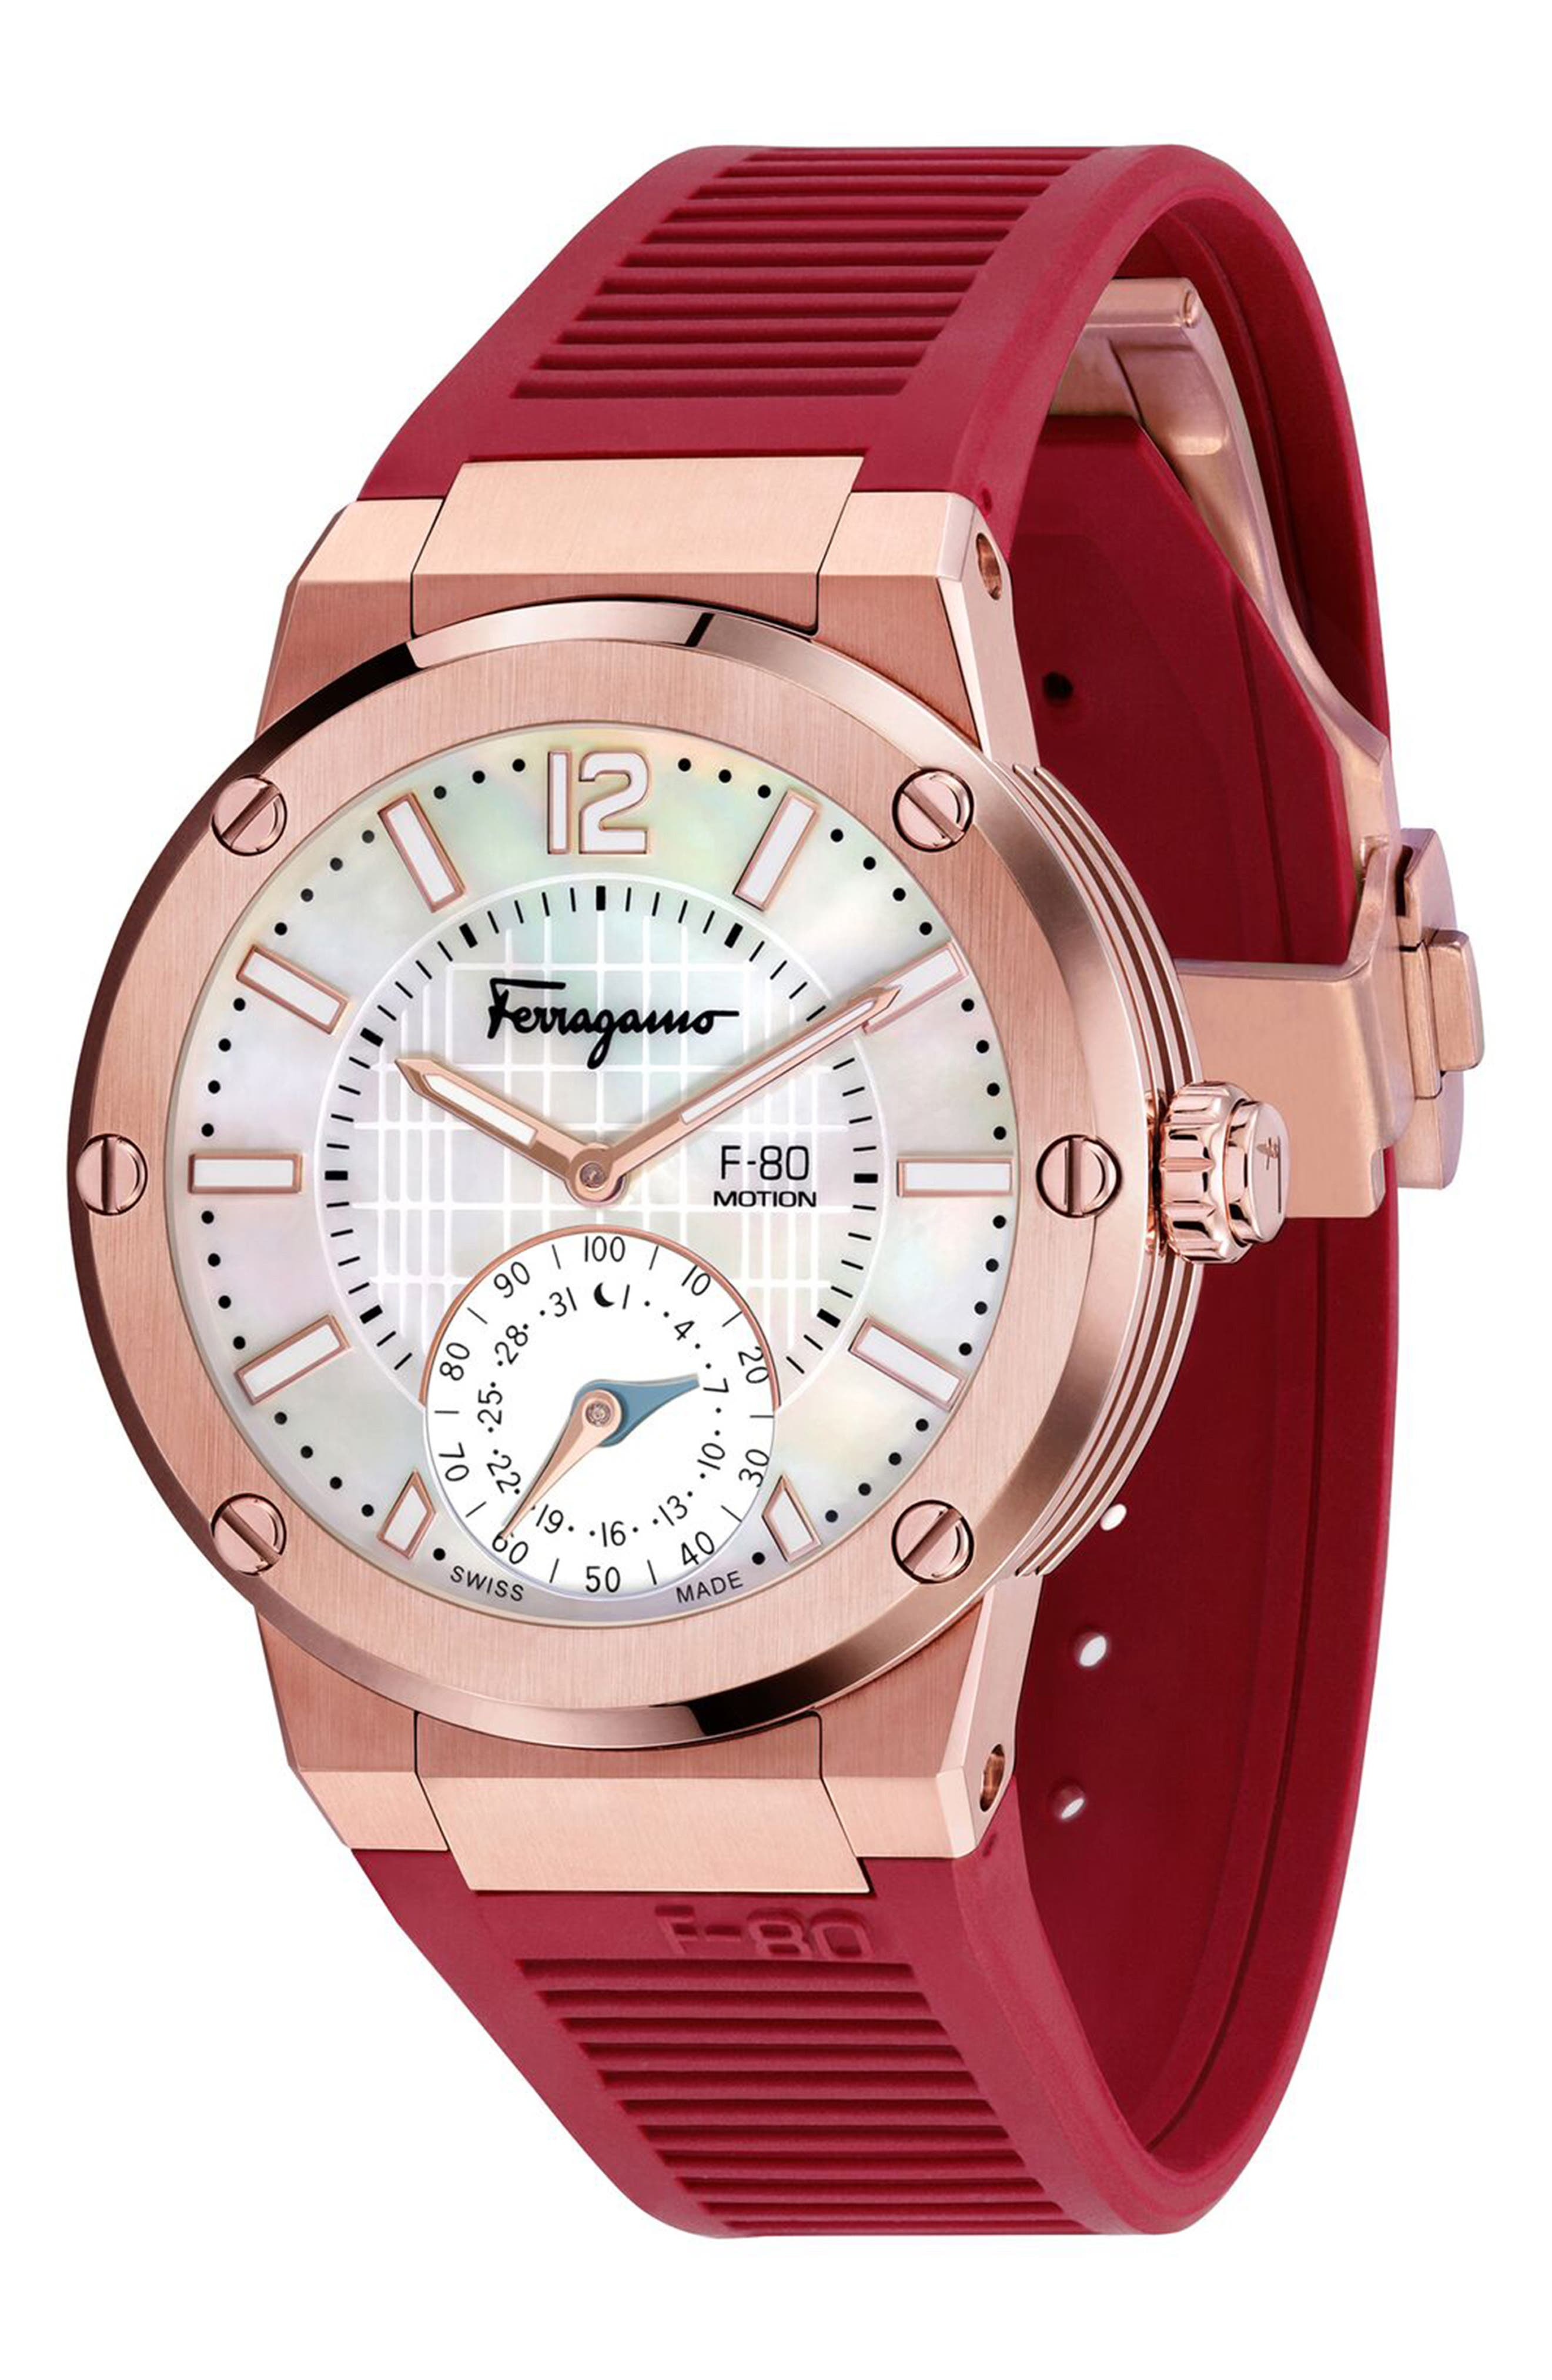 F-80 Motion Rubber Strap Smart Watch, 44mm, Main, color, BURGUNDY/ WHITE MOP/ ROSE GOLD